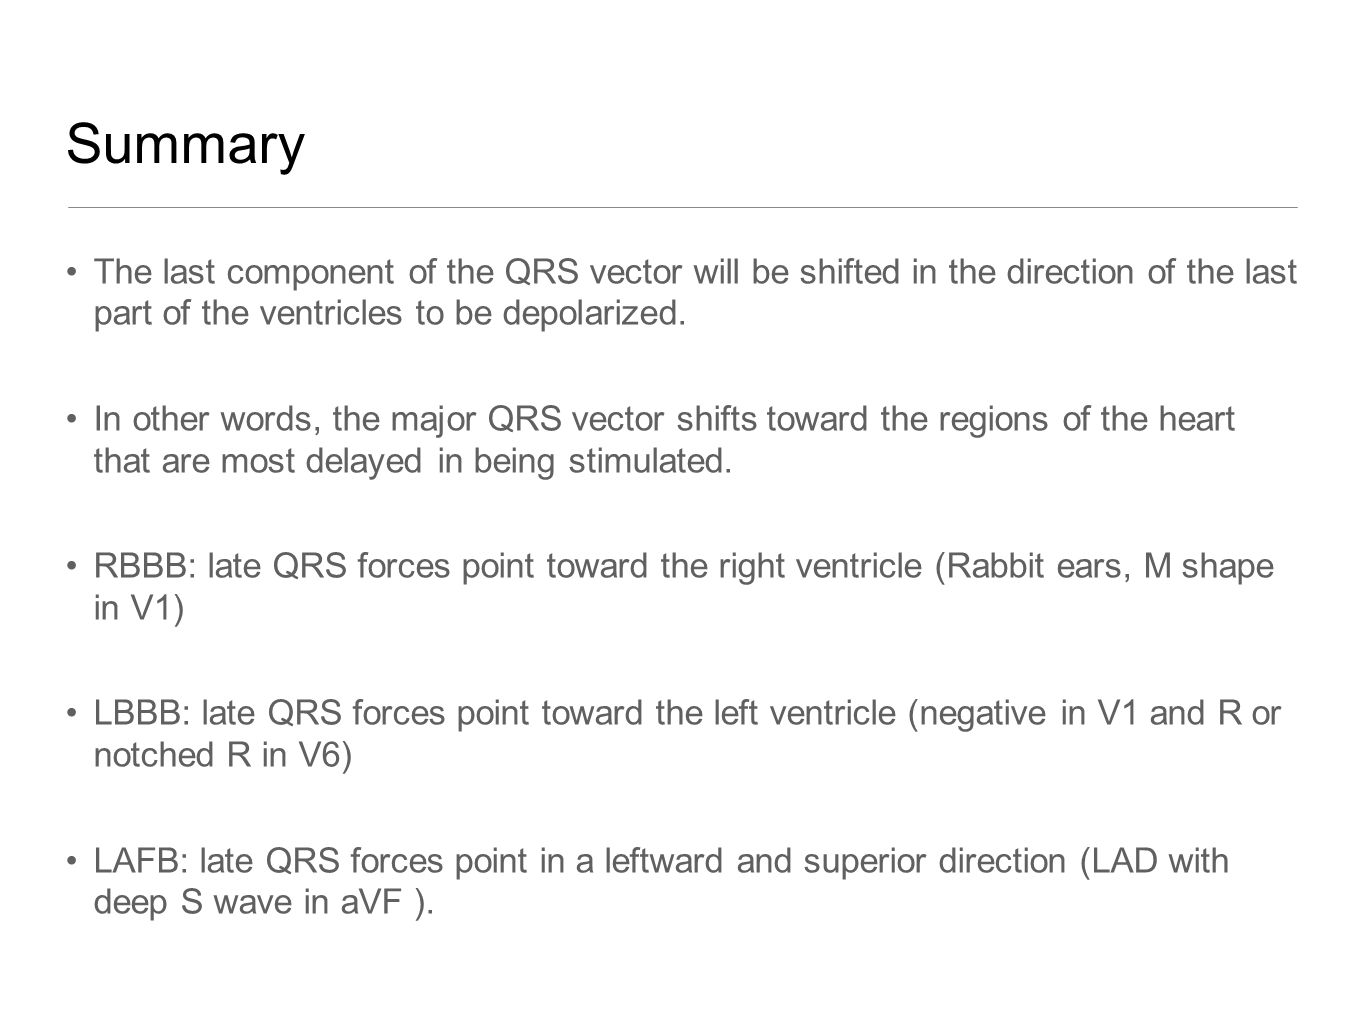 Summary The last component of the QRS vector will be shifted in the direction of the last part of the ventricles to be depolarized.